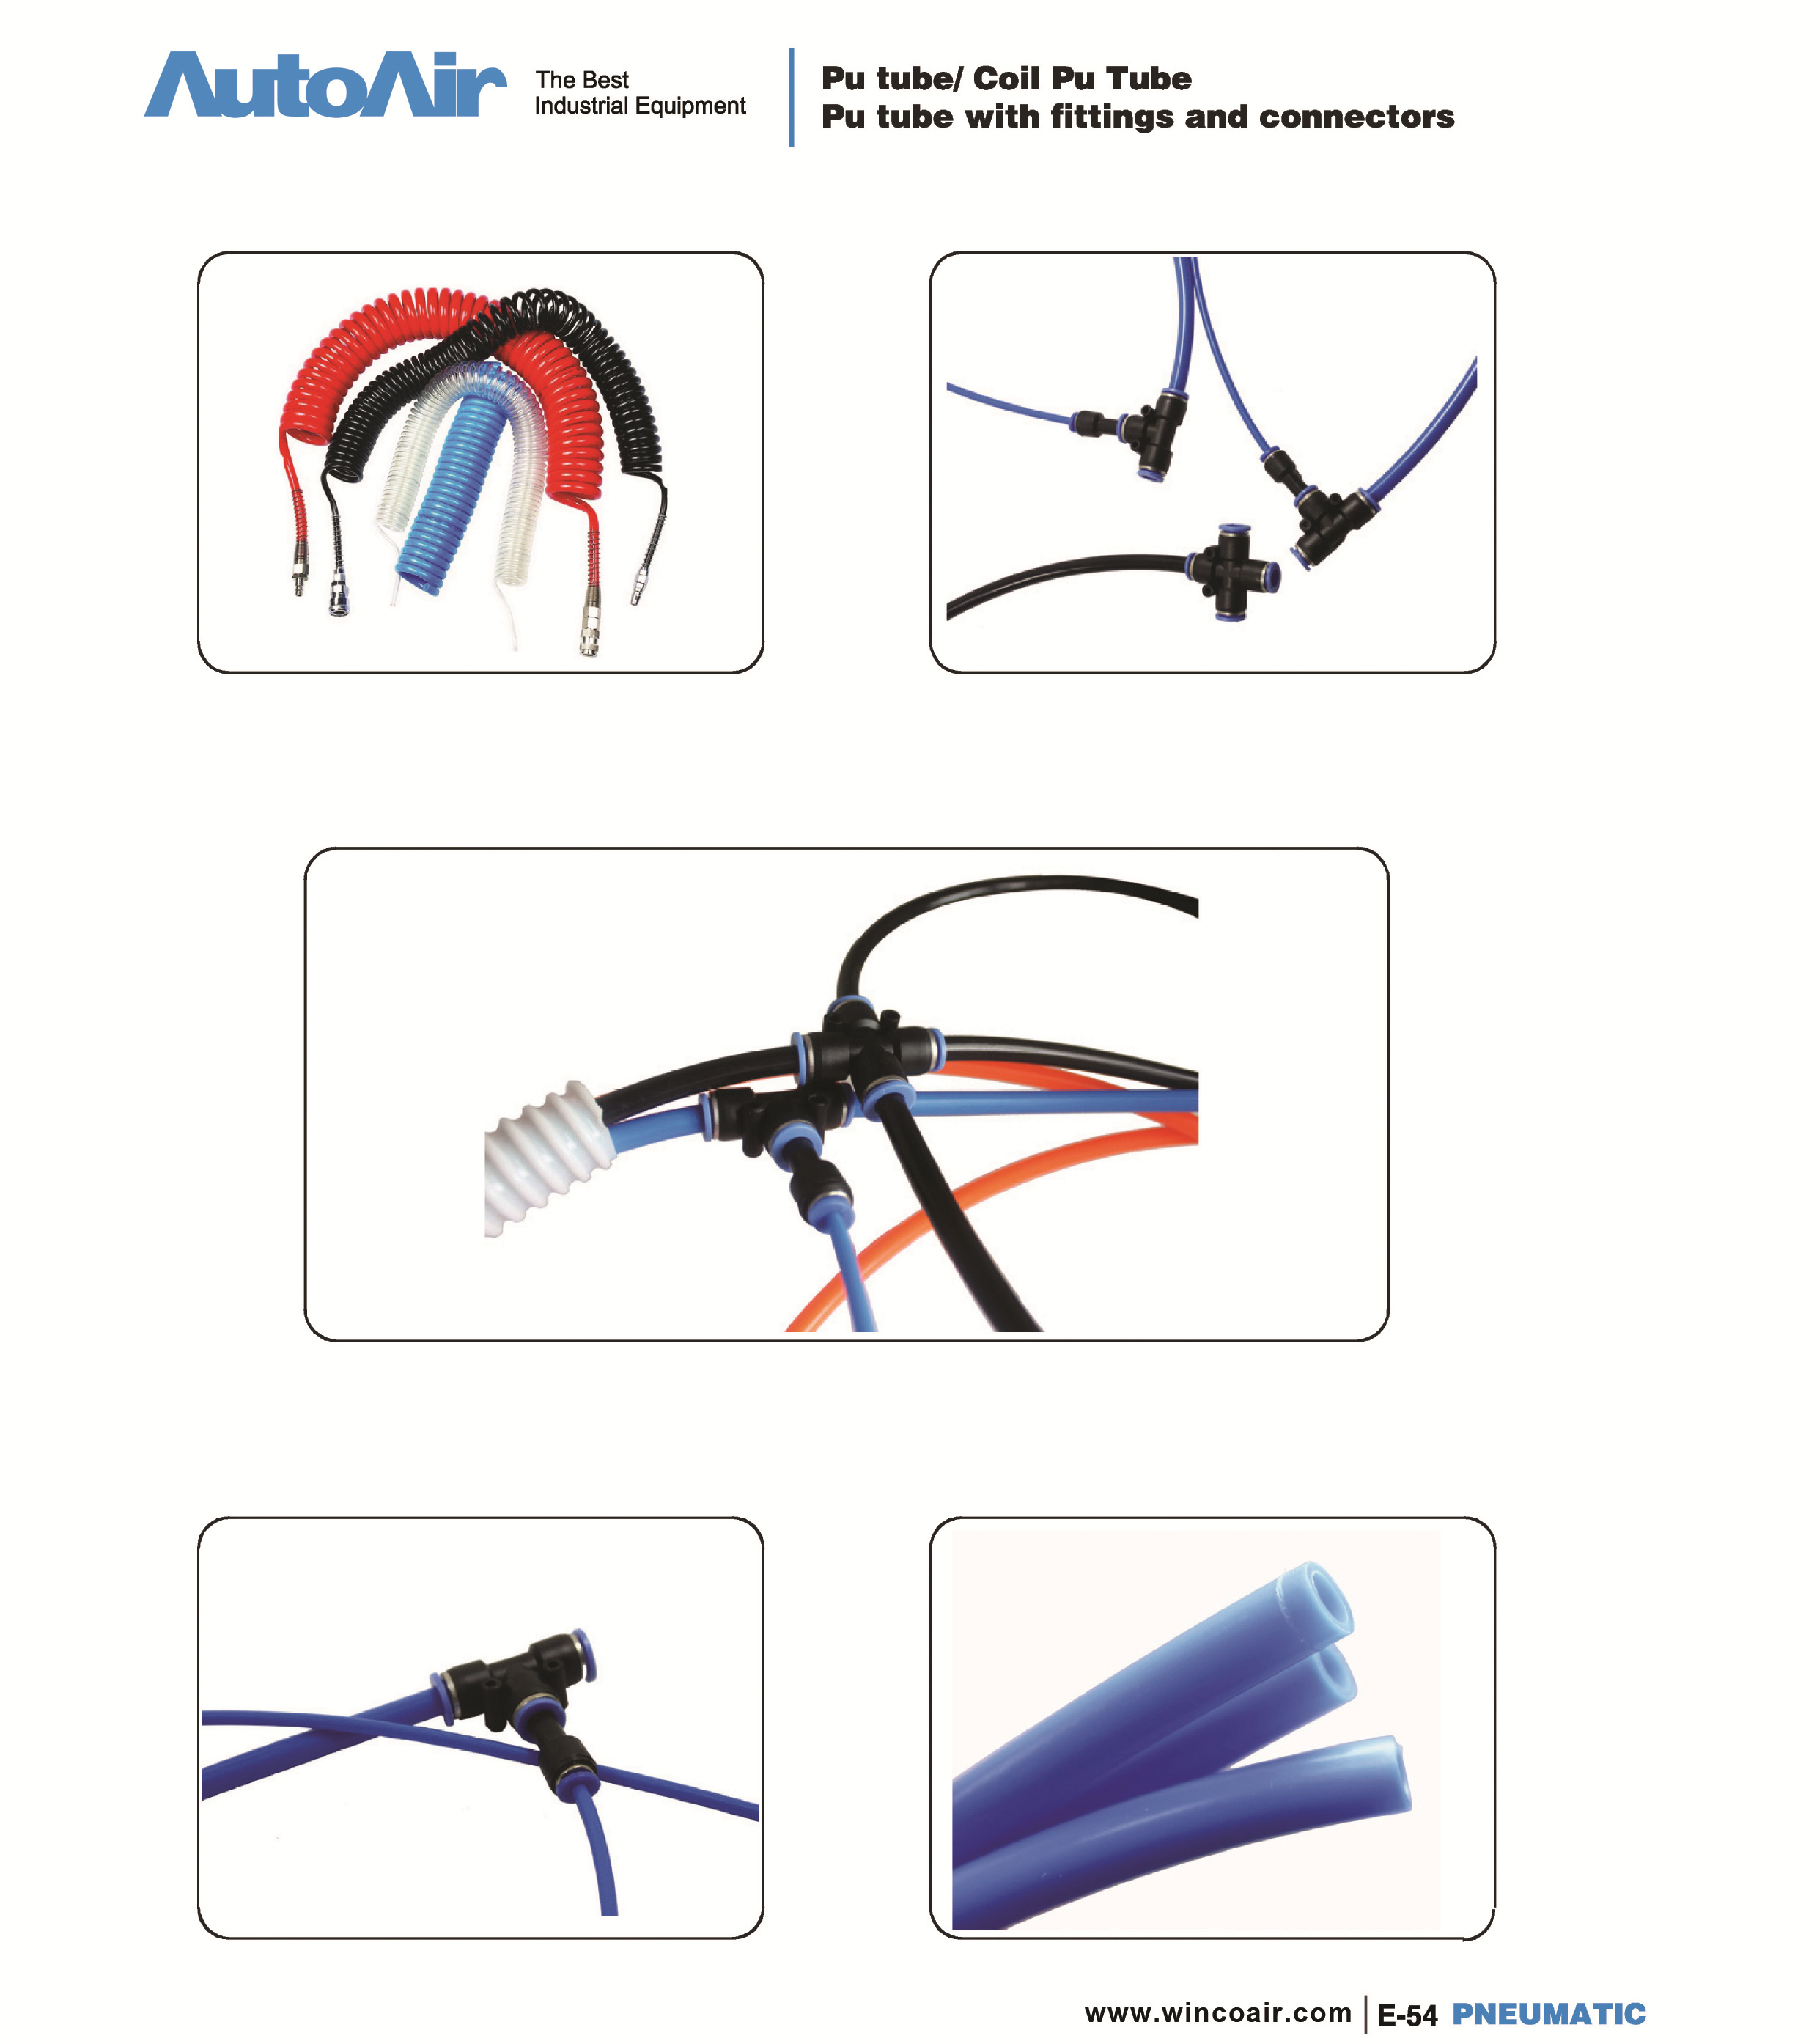 fittings and tubing(54)